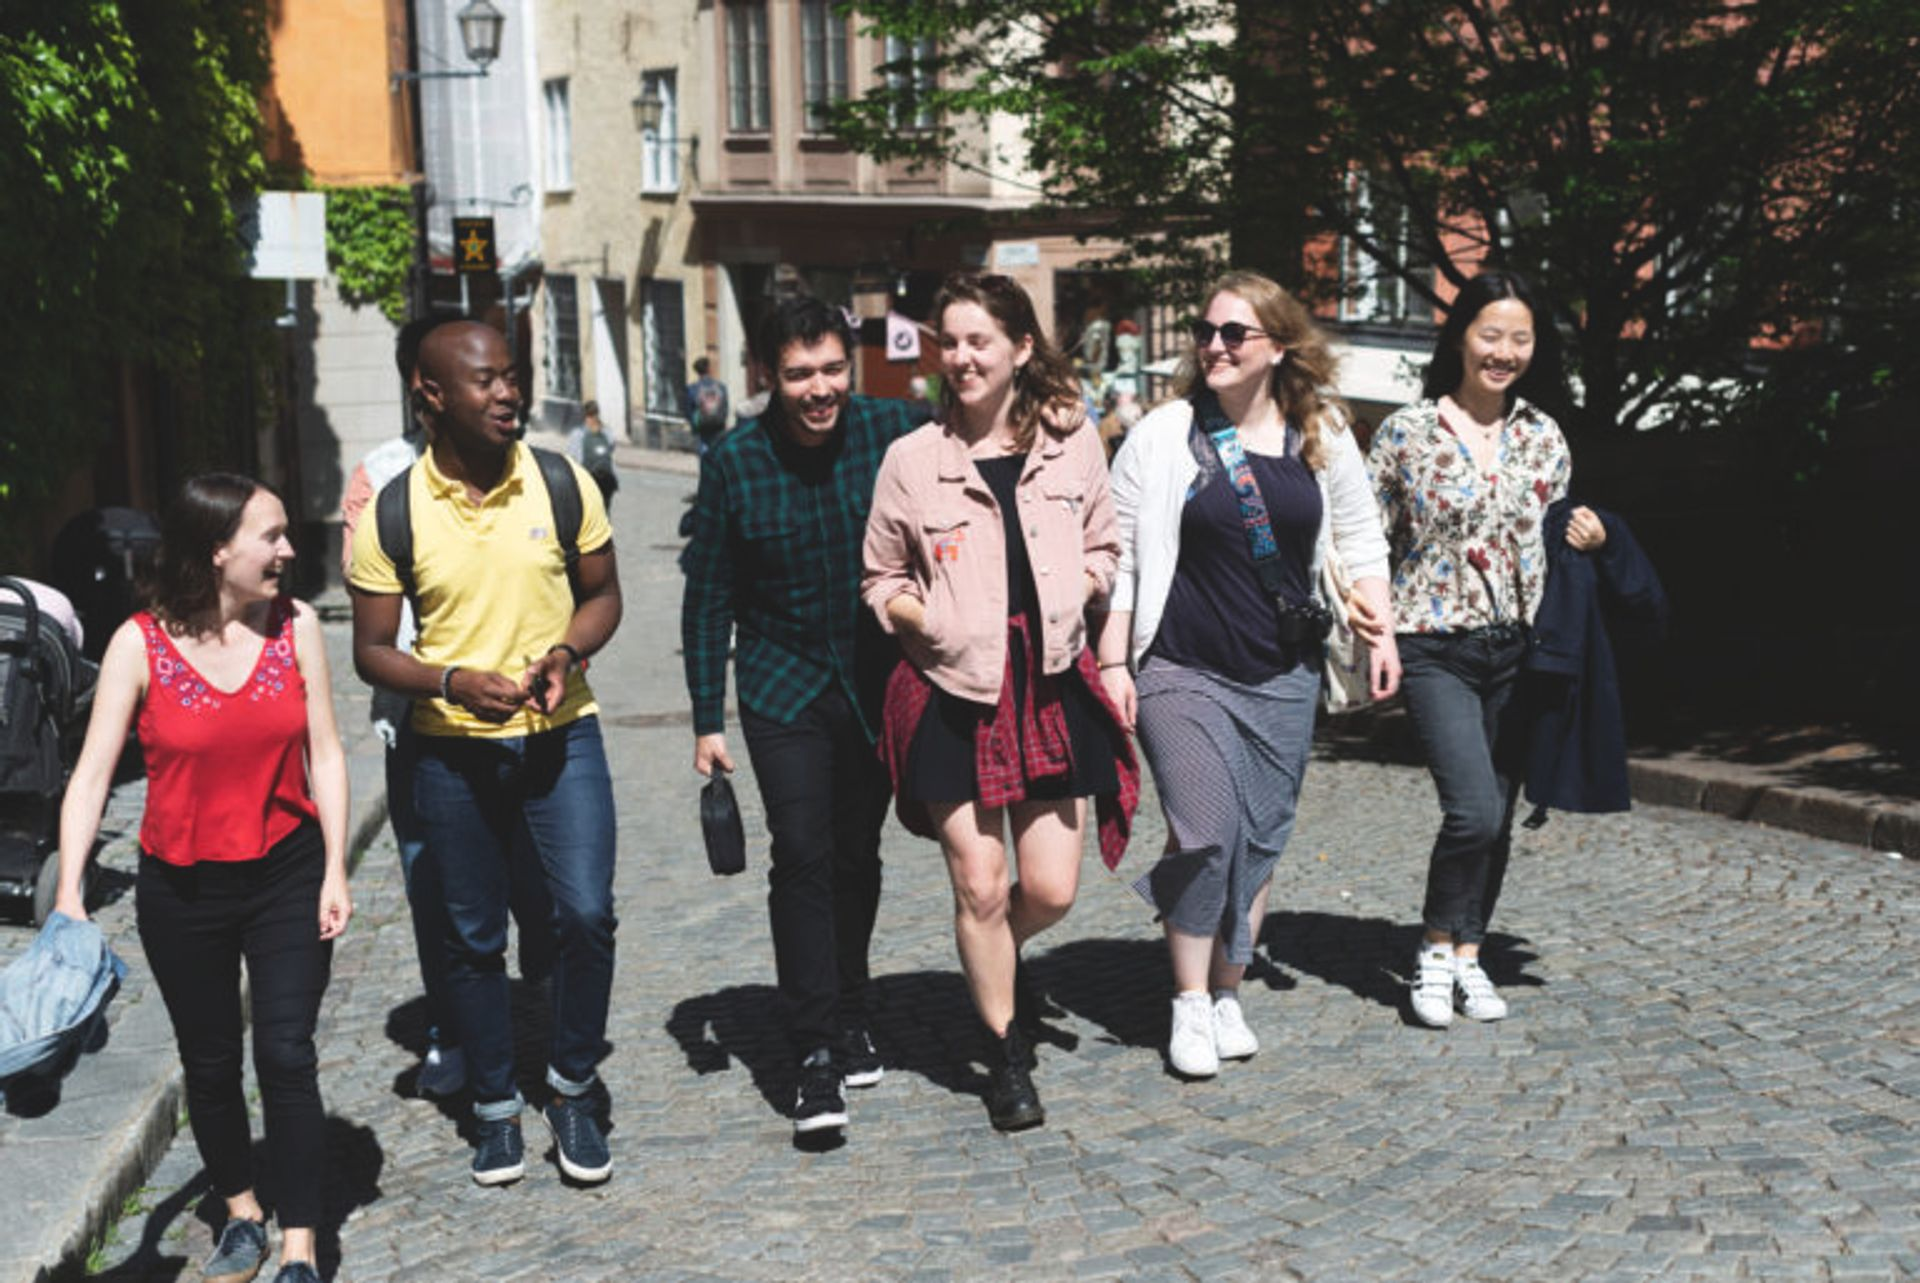 A group of students walking in Stockholm's Old Town.